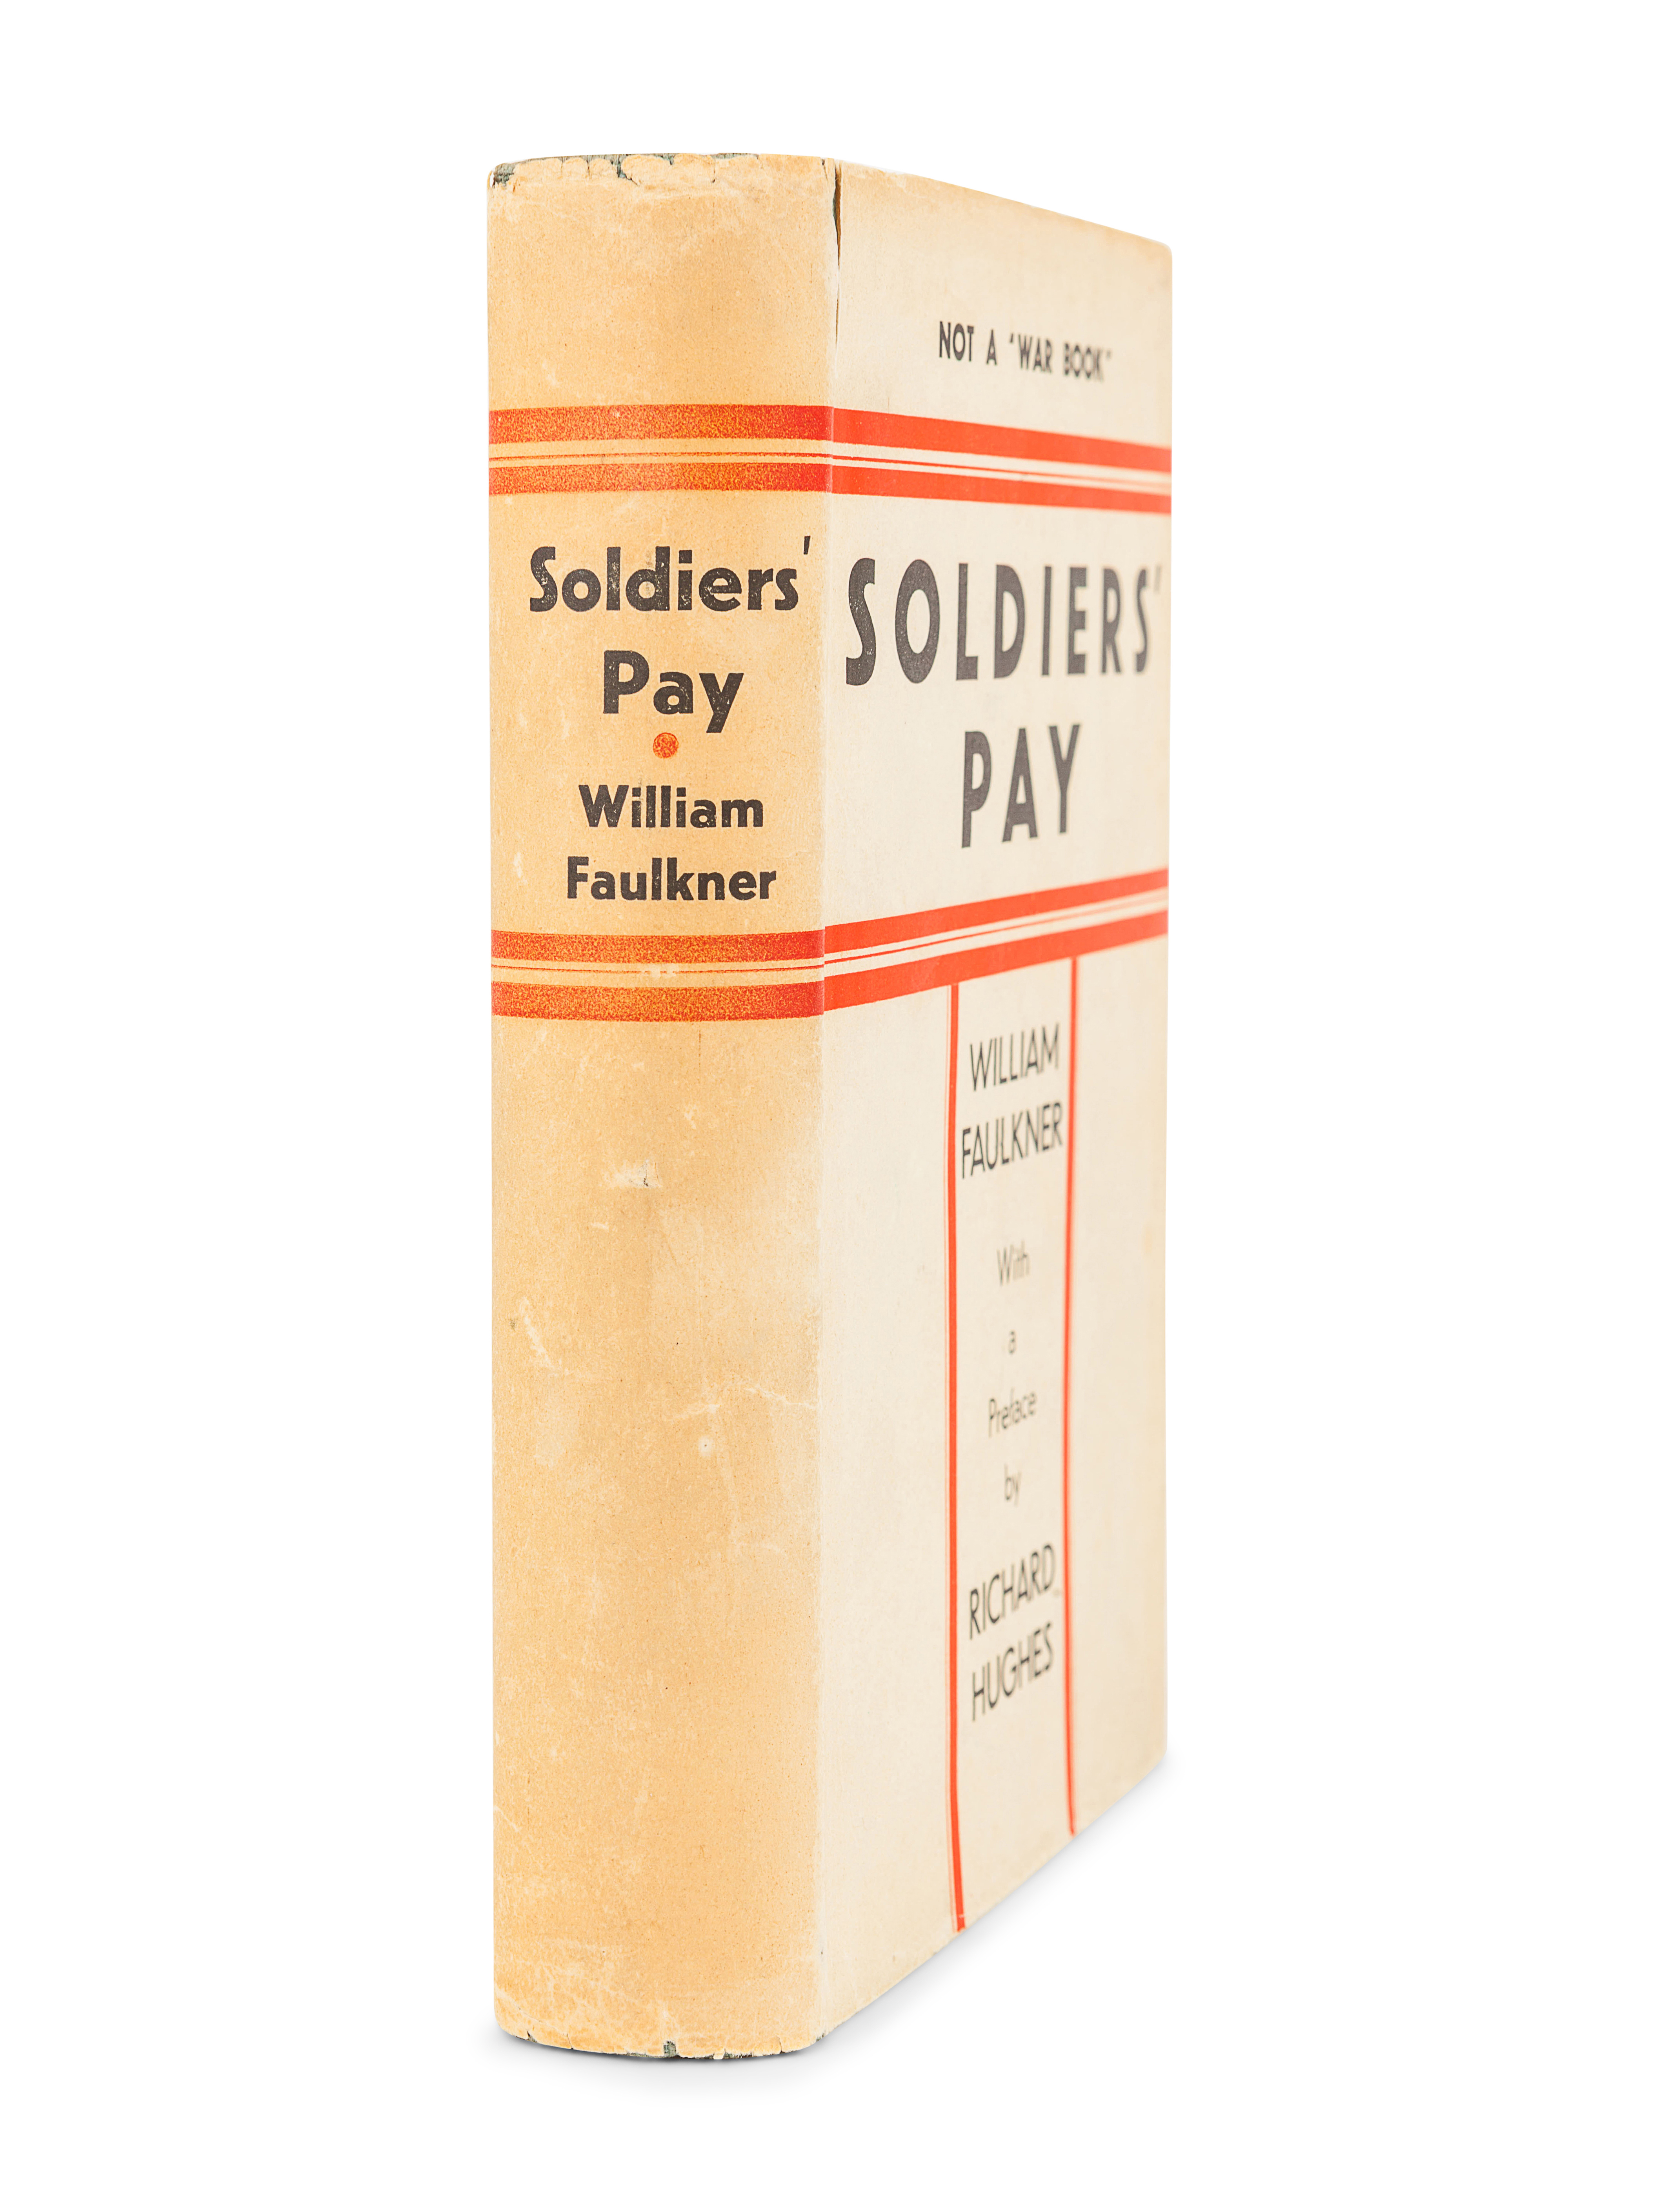 FAULKNER, William (1897-1962). Soldiers' Pay. New York: Boni & Liveright, 1926. - Image 2 of 3